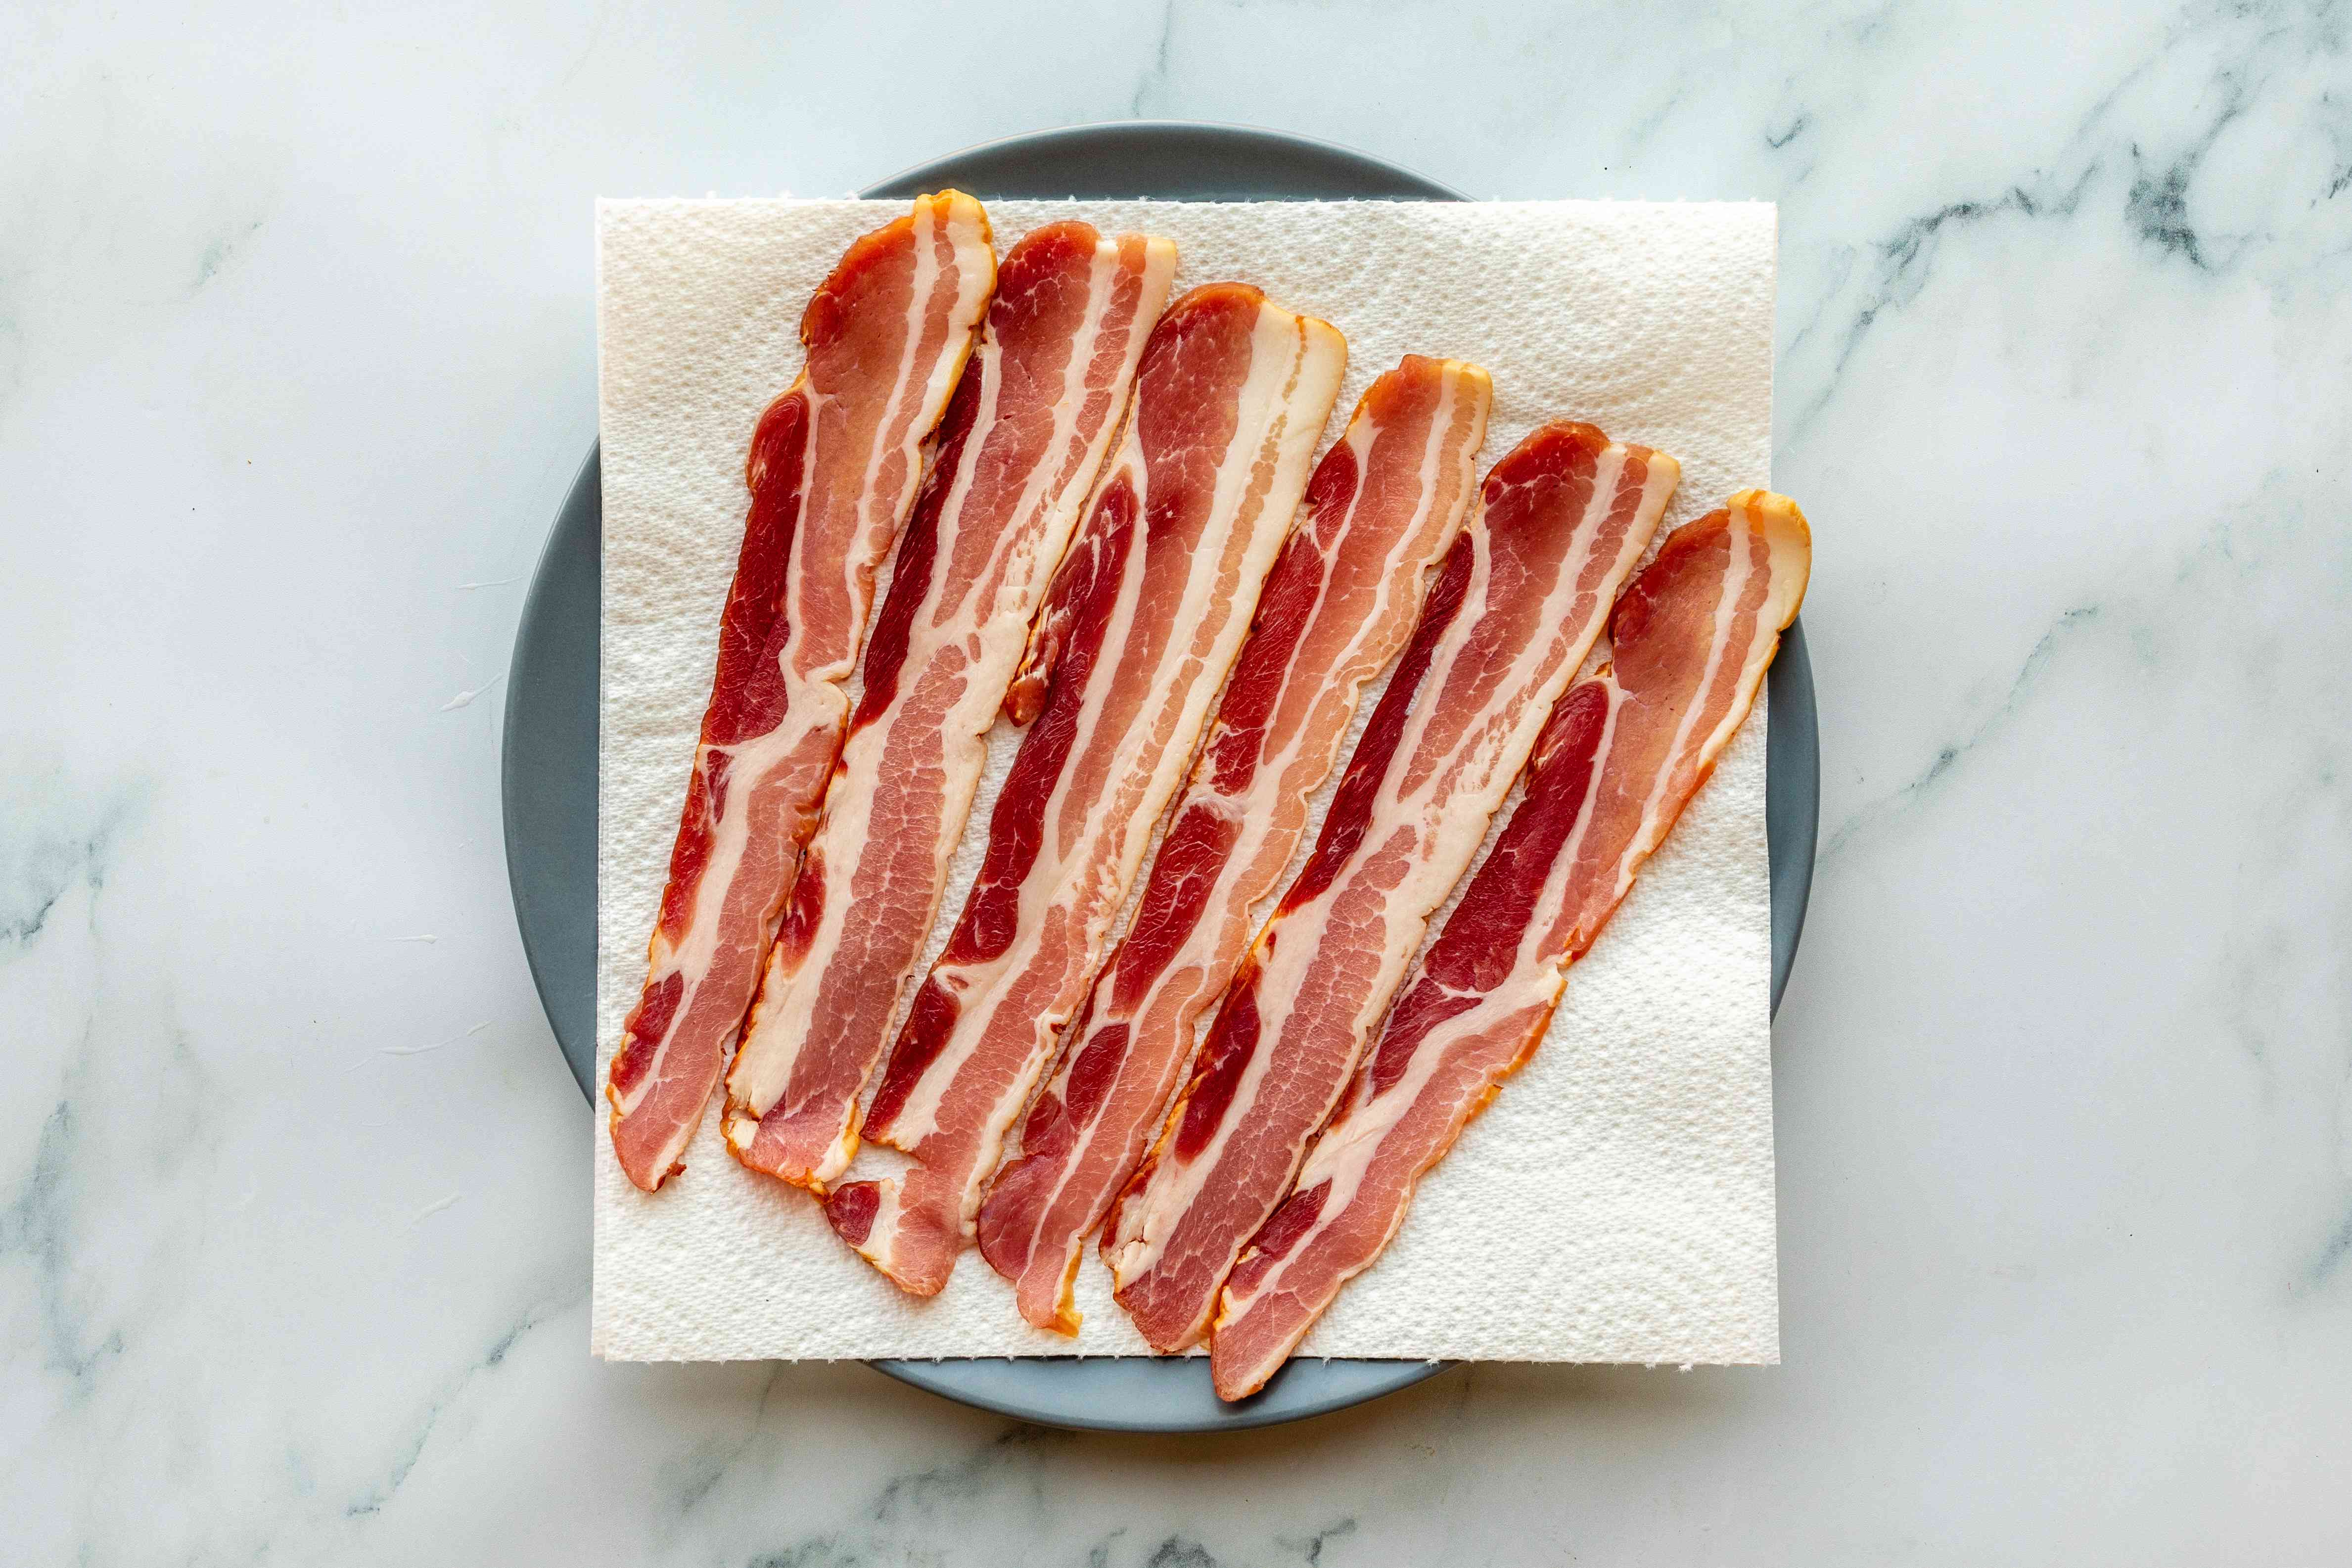 Six slices of bacon arranged on a paper towel and plate